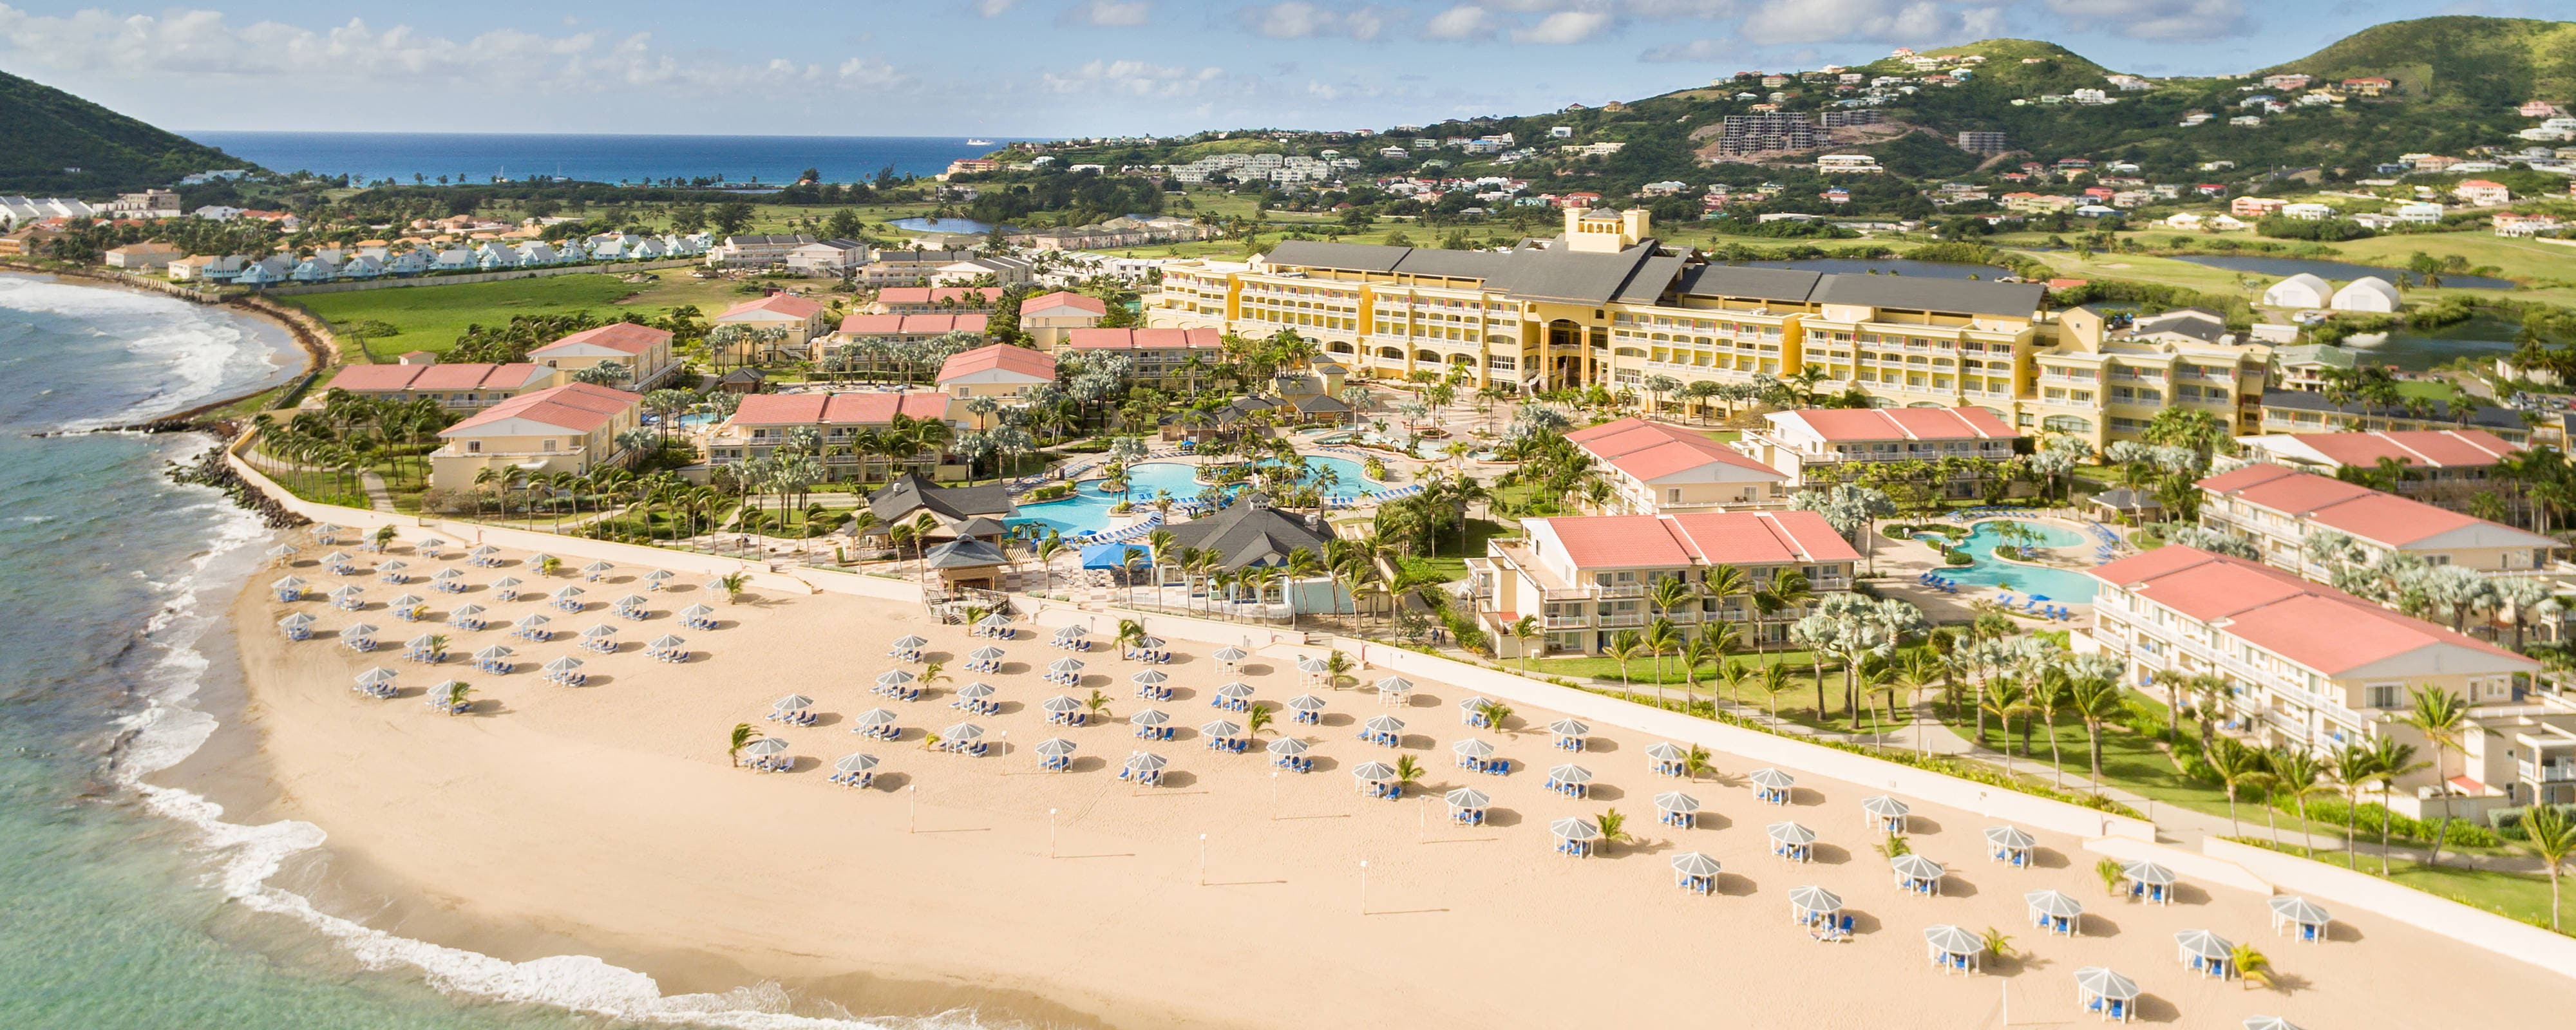 St Kitts Marriott Resort The